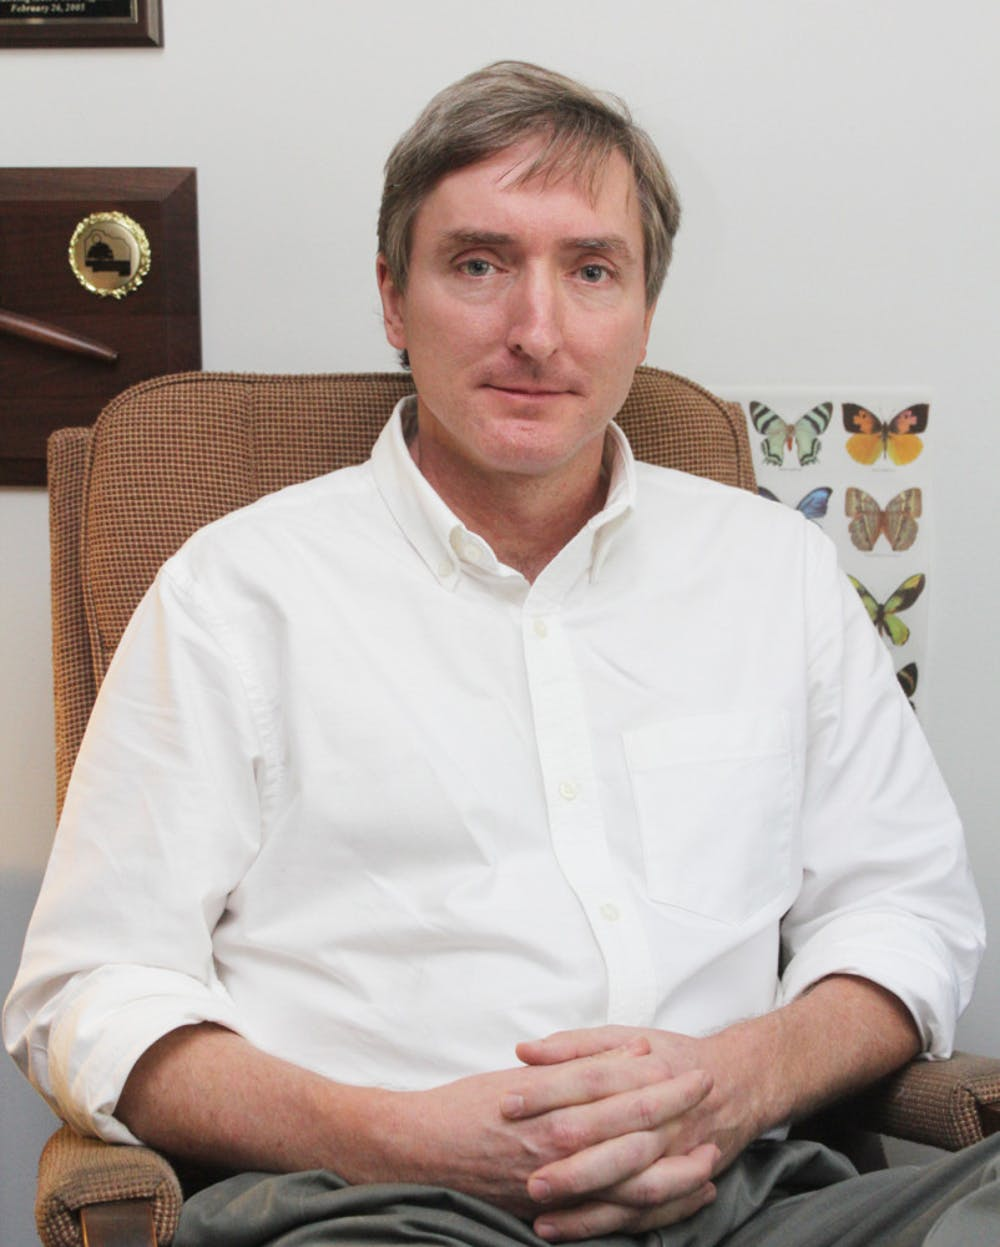 <p>County Commissioner Mike Byerly sits in his office at an Alachua County Commission meeting Tuesday. Byerly is a 12-year commission incumbent.</p>